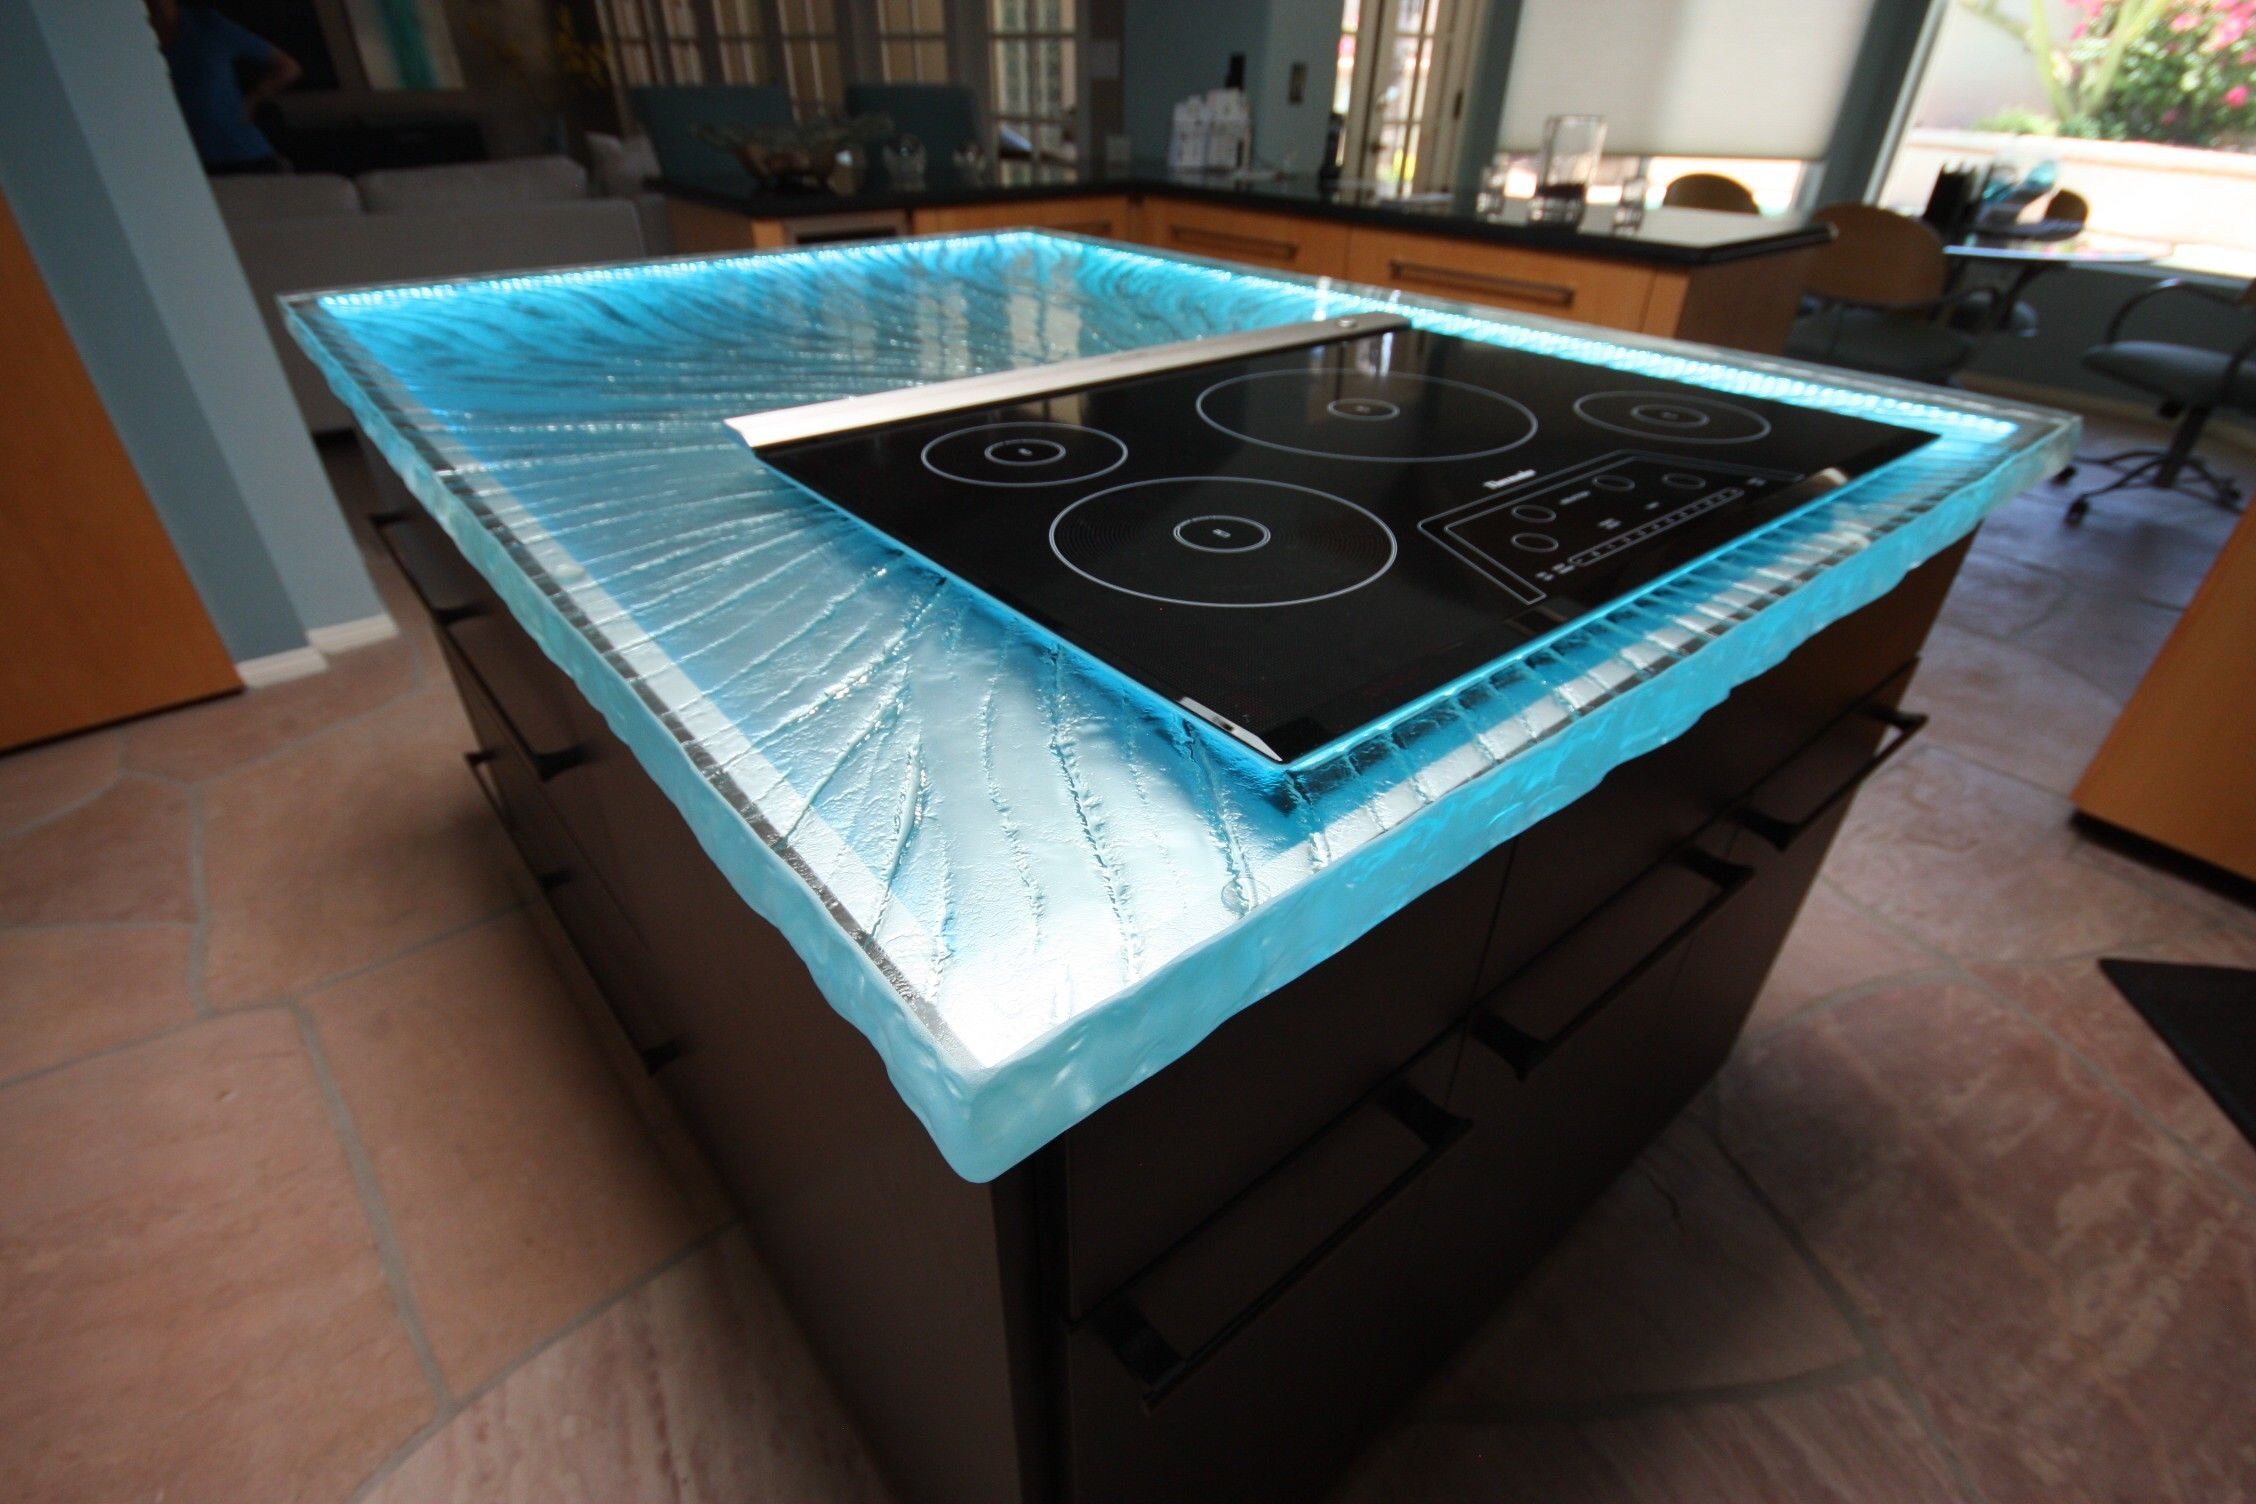 Image Result For Recycled Glass Countertop Glass Kitchen Countertops Glass Countertops Cheap Countertops